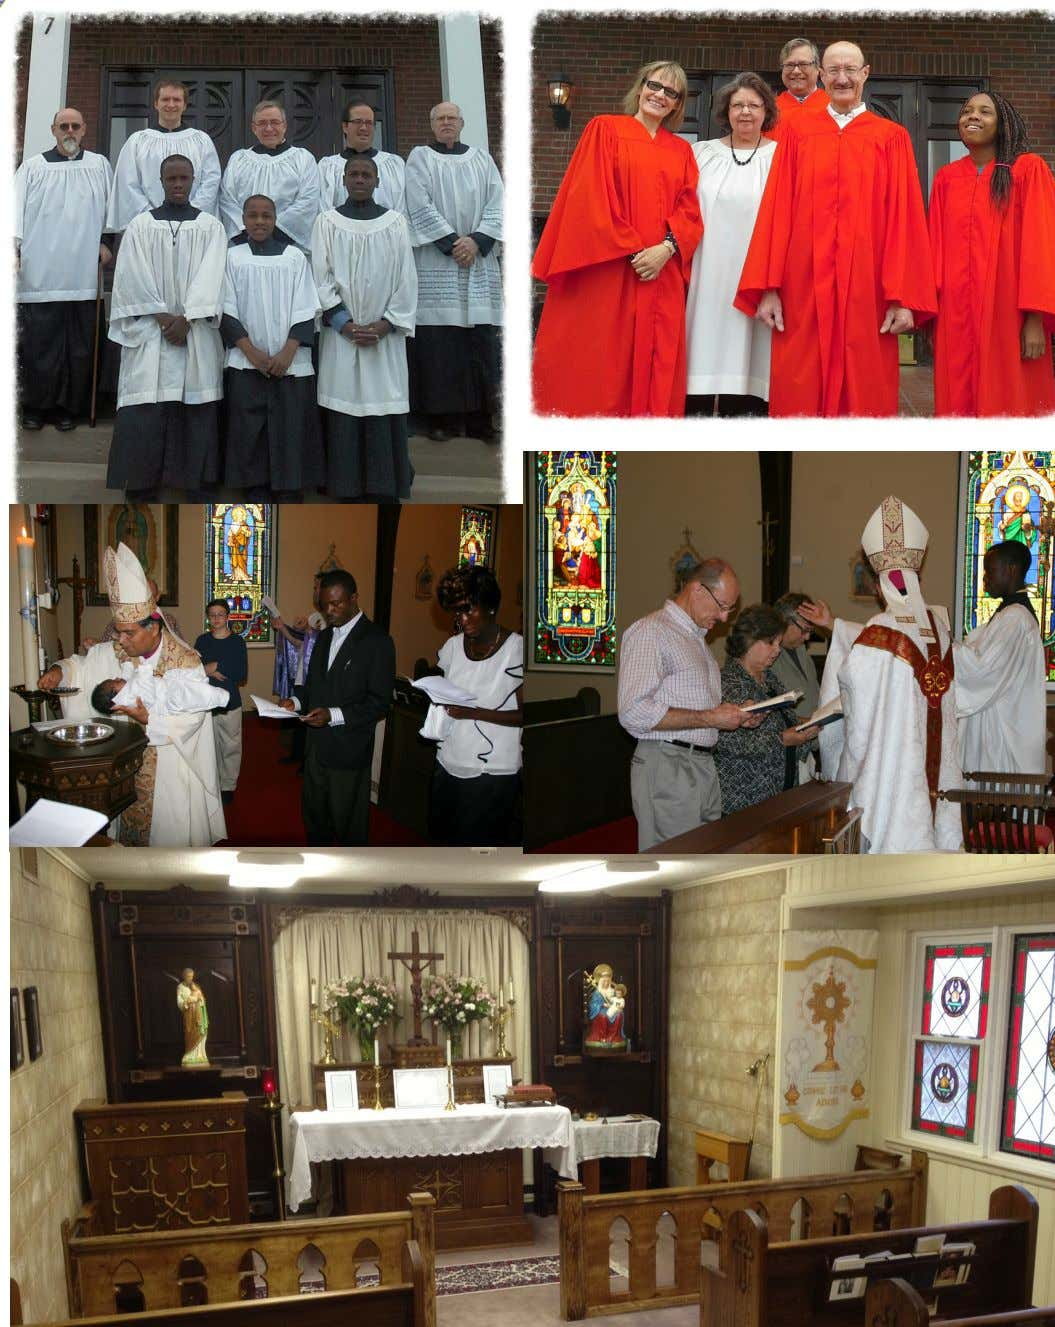 Clockwise; St. James Holy Catholic Church Anglican Rite' s Lay Readers and Altar Servers, Choir